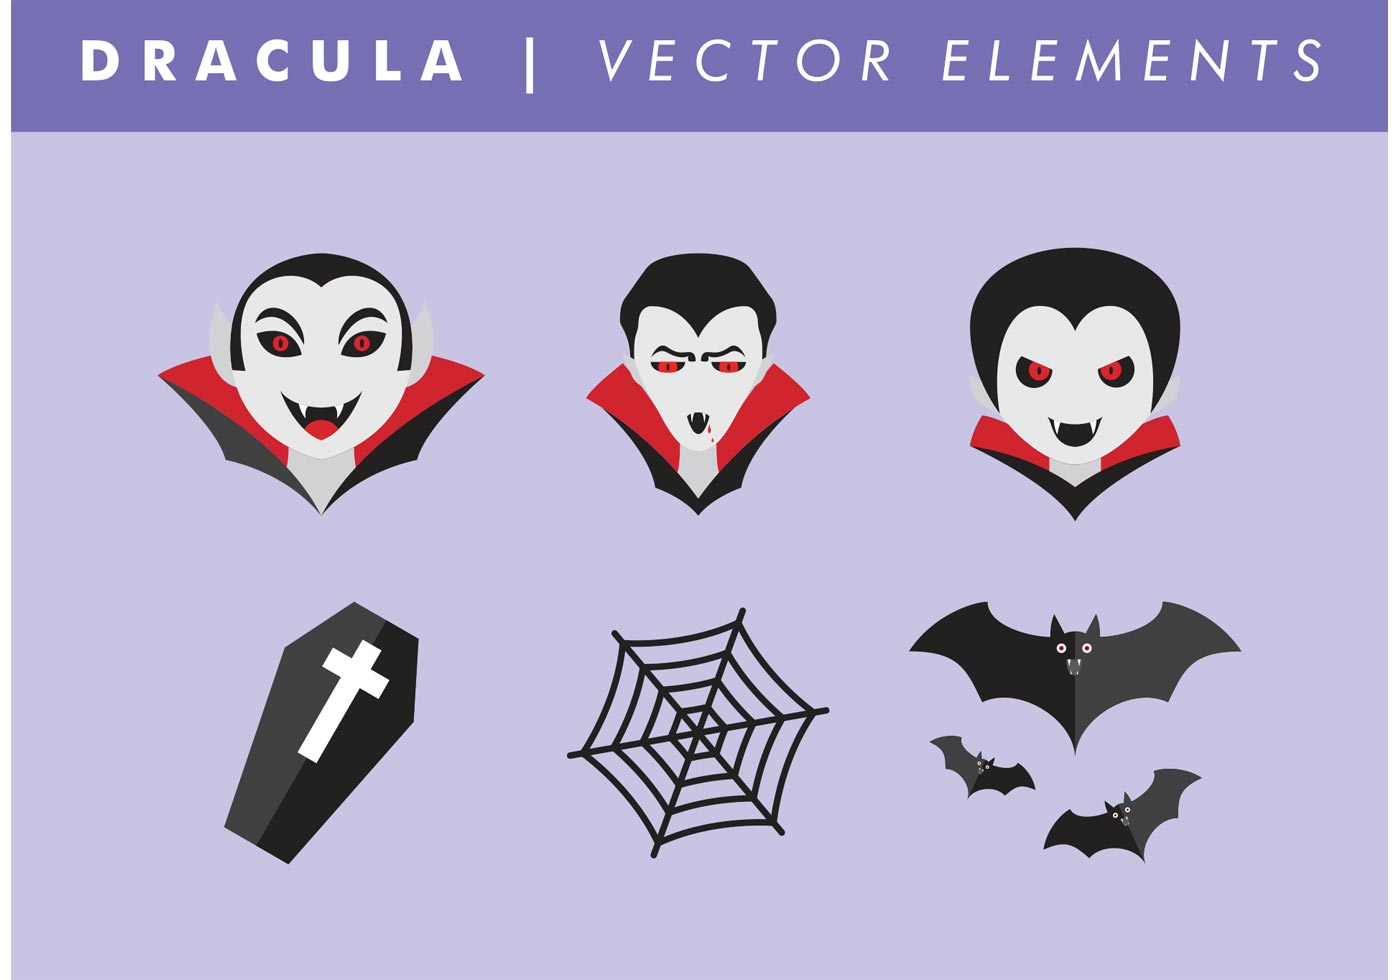 dracula gothic elements What significance do the gothic elements have in dracula what efffect/purpose are they serving are they working.